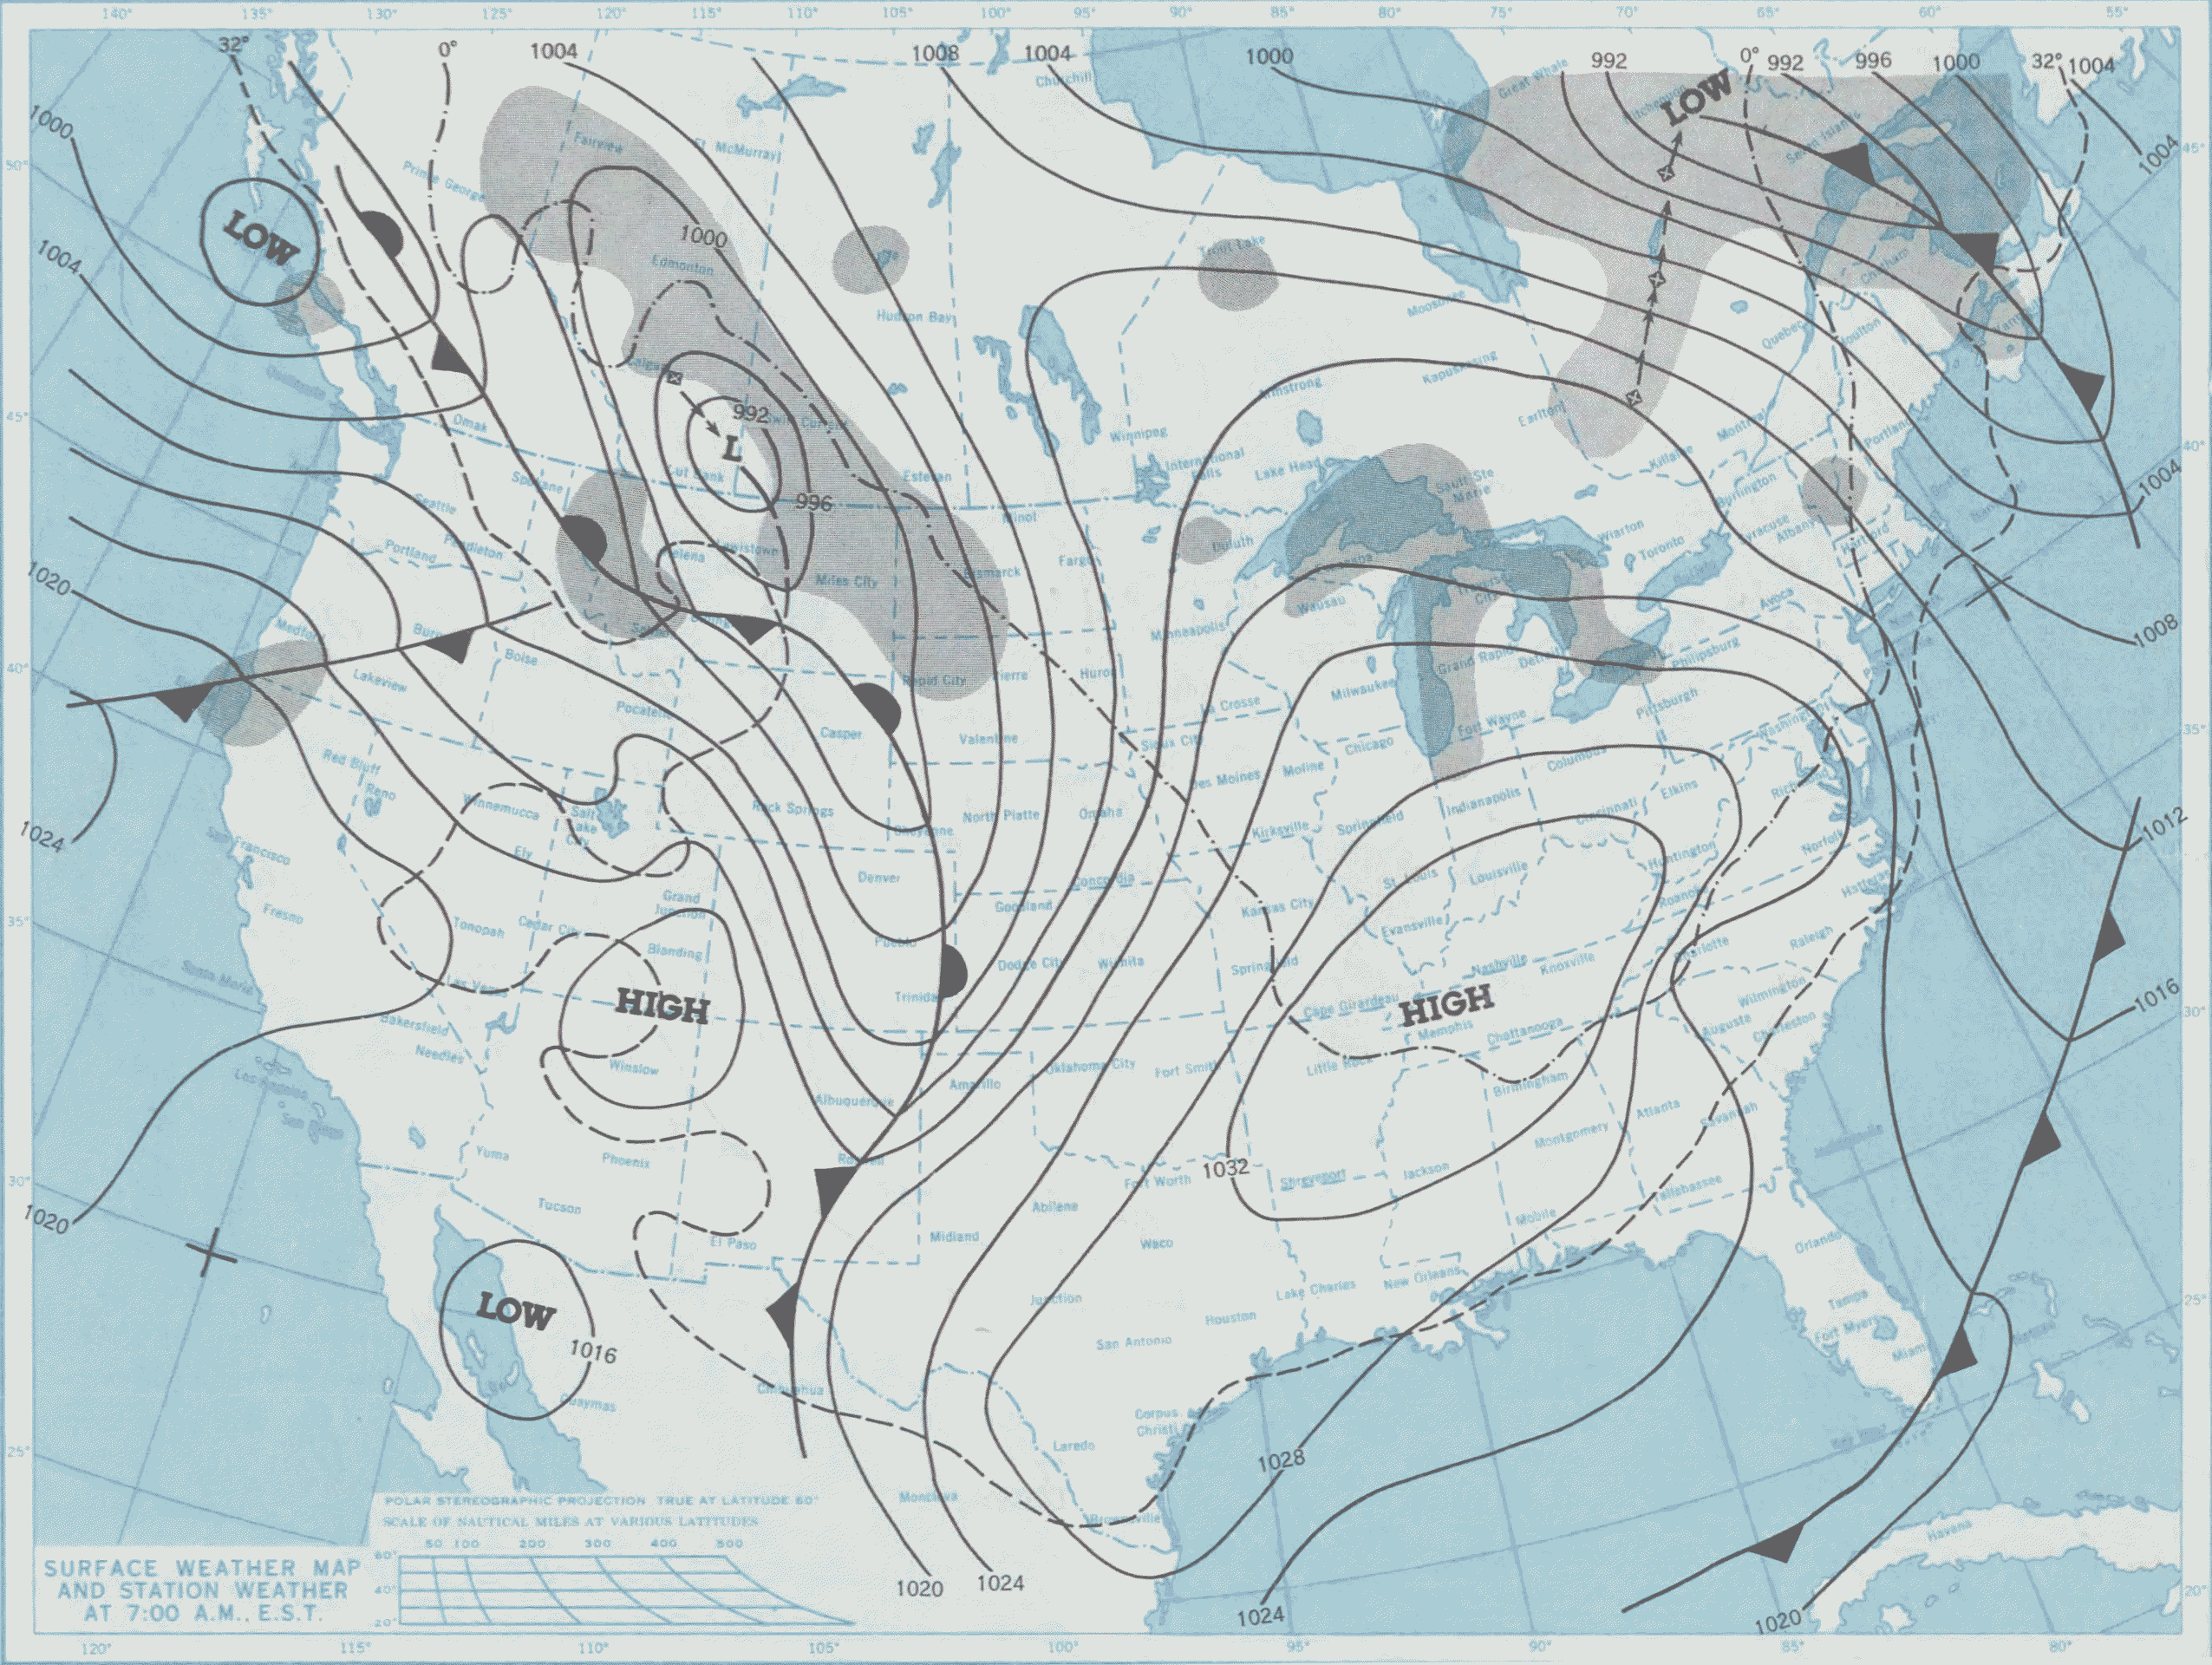 National Weather Service Surface Weather Map From January 17 1982